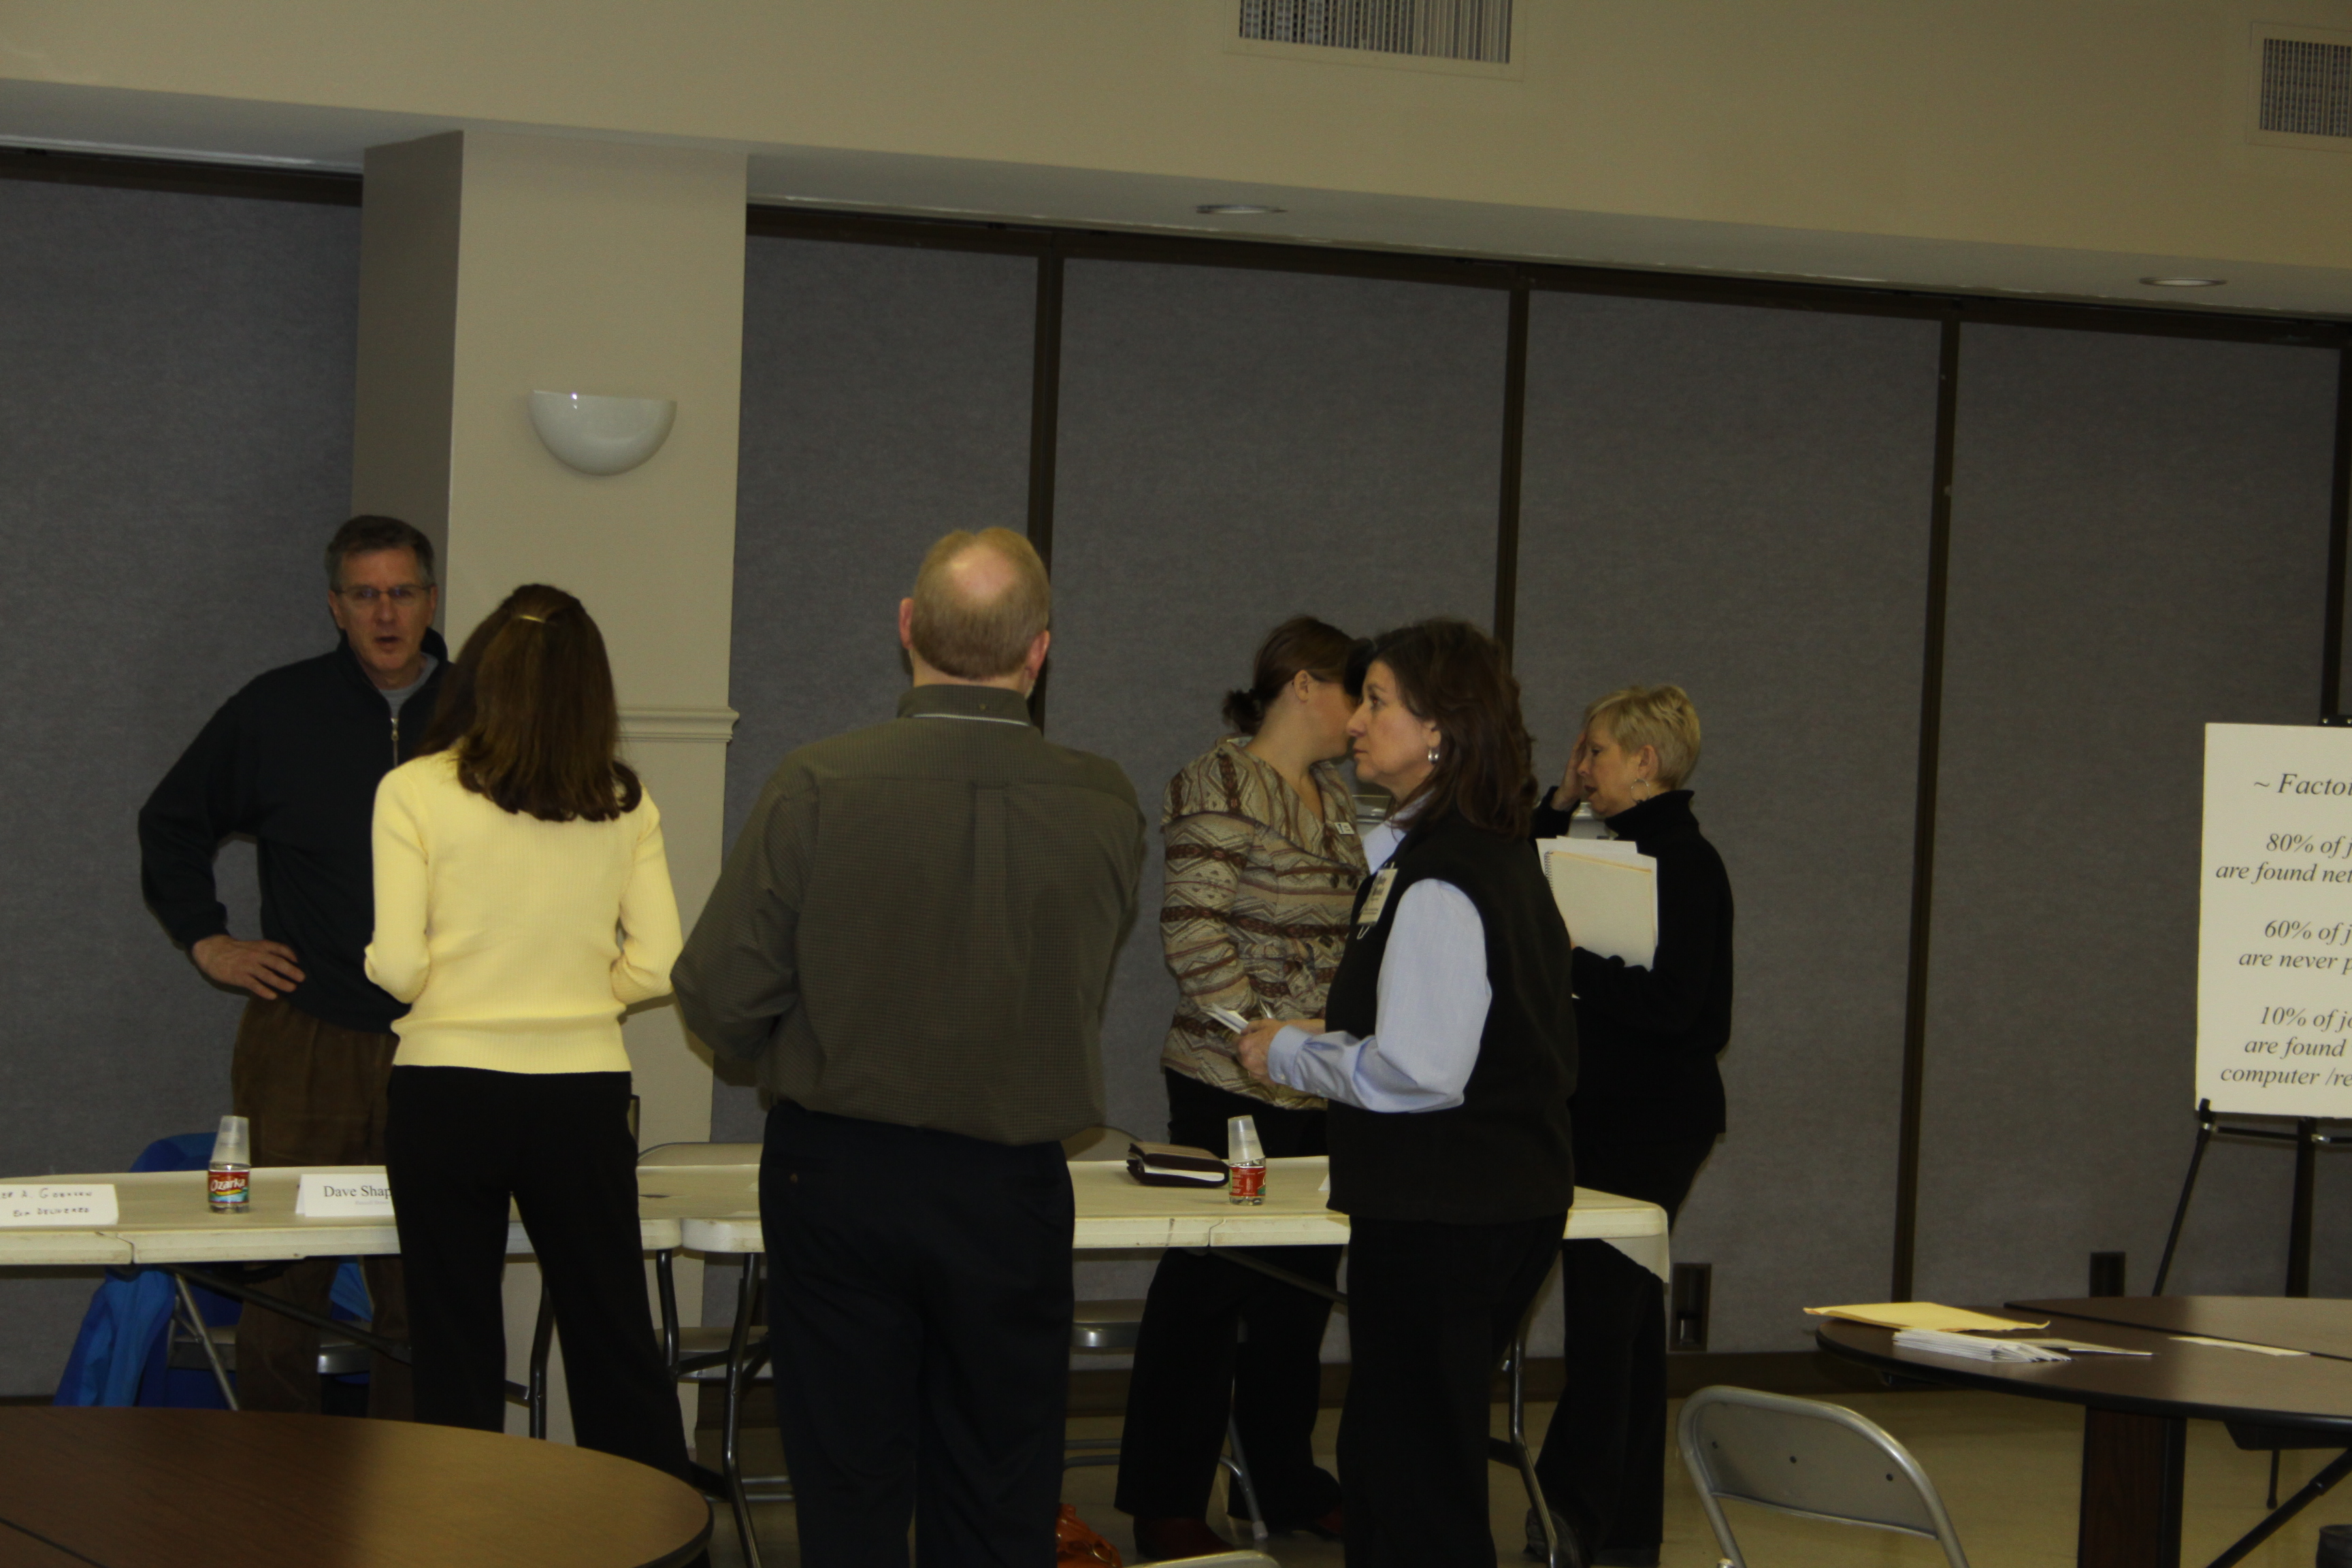 022611Roundtable 011